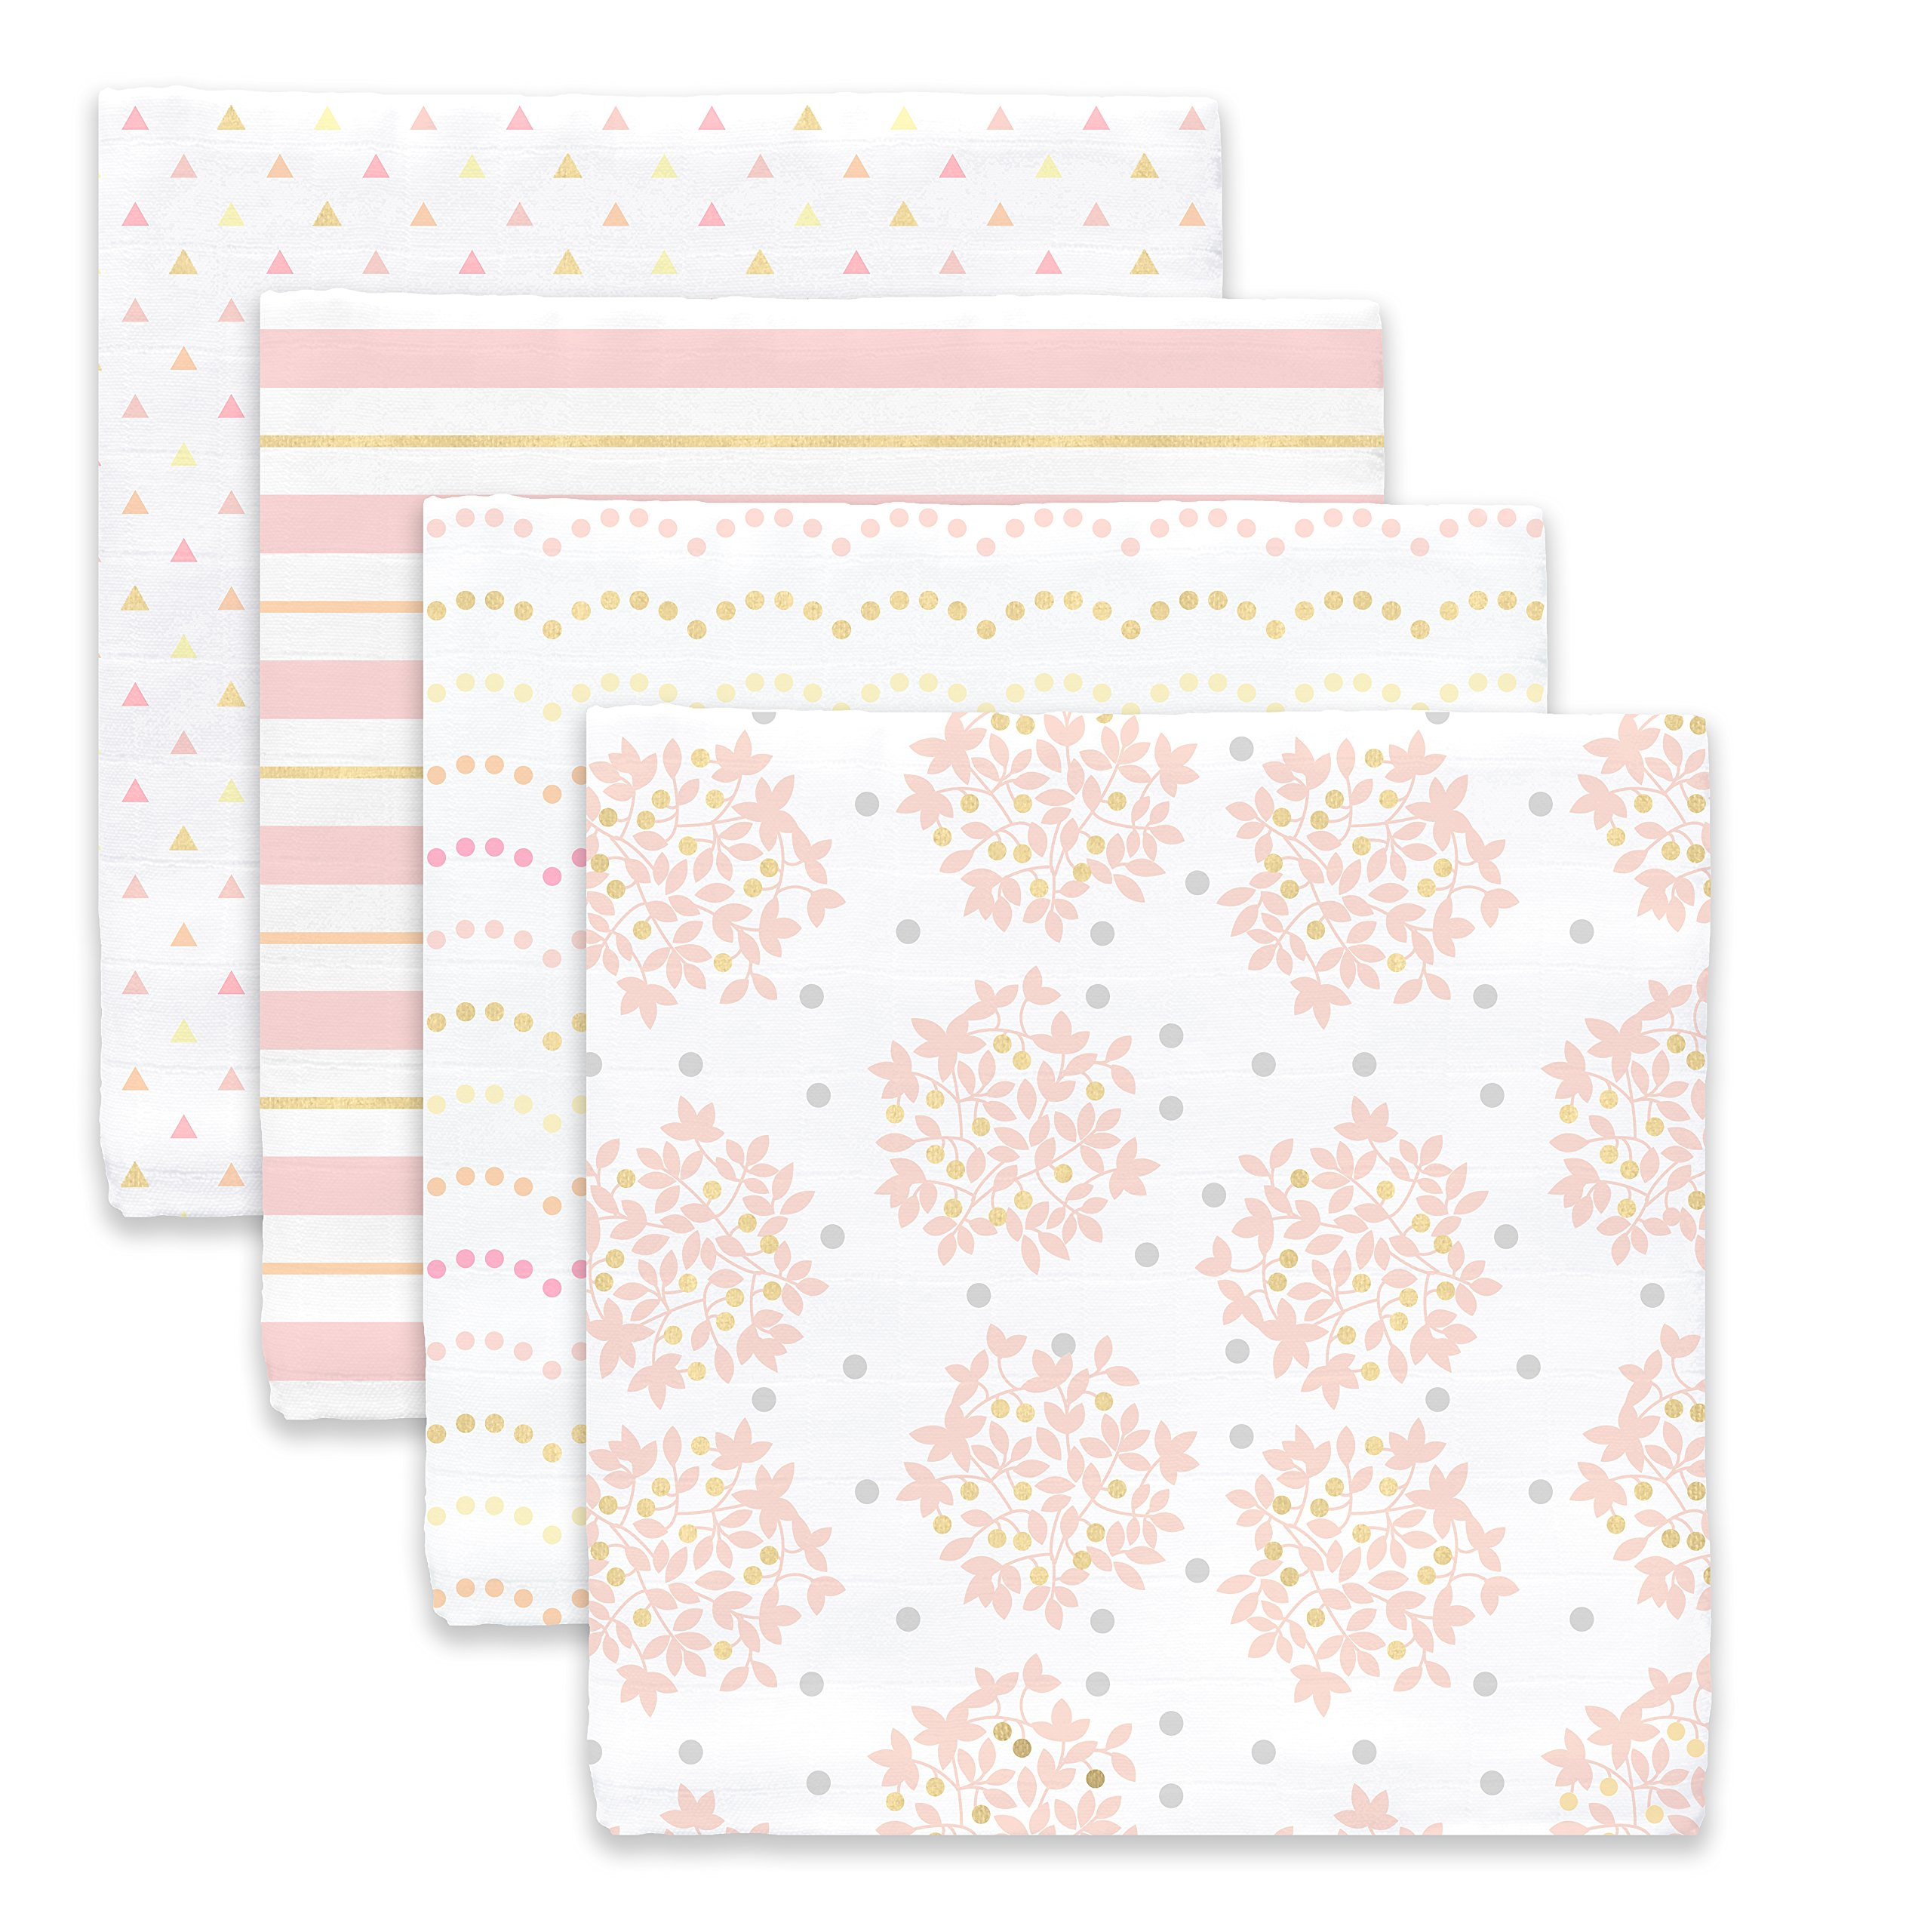 SwaddleDesigns Cotton Muslin Swaddle Blankets, Set of 4, Pink Heavenly Floral by SwaddleDesigns (Image #2)